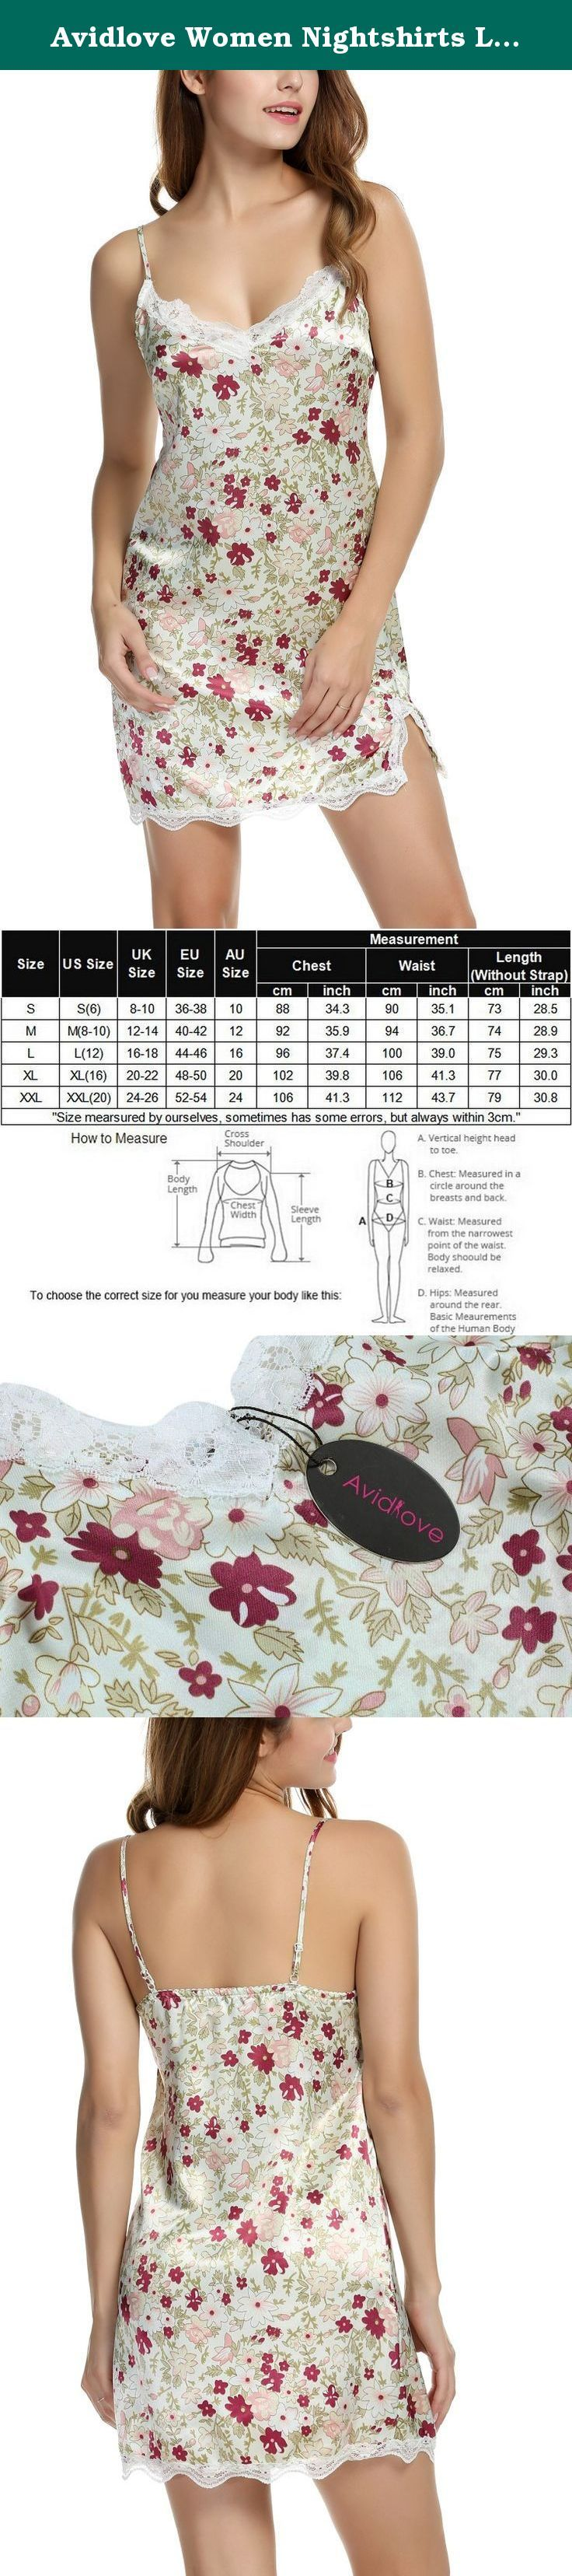 Avidlove Women Nightshirts Lingerie Floral Nightgown Slip Babydoll Chemises White S. 100% Brand New Brand: Avidlove Avidlove Women Sexy Babydoll Lingerie Floral Nightgown Chemises Slip Flowers Sleepwear Material: 93% Polyester, 7% Spandex Women V Neck Floral Satin Sleepwear Nightgown Featuring lace patchwork on collar and hemline Garment Care: Washing max 30¡ãC, Hang to Dry, Warm Iron Adjustable strap, elastic band at back 3 Colors available: White, Green, Dark Blue Sleeve Type: Spaghetti...